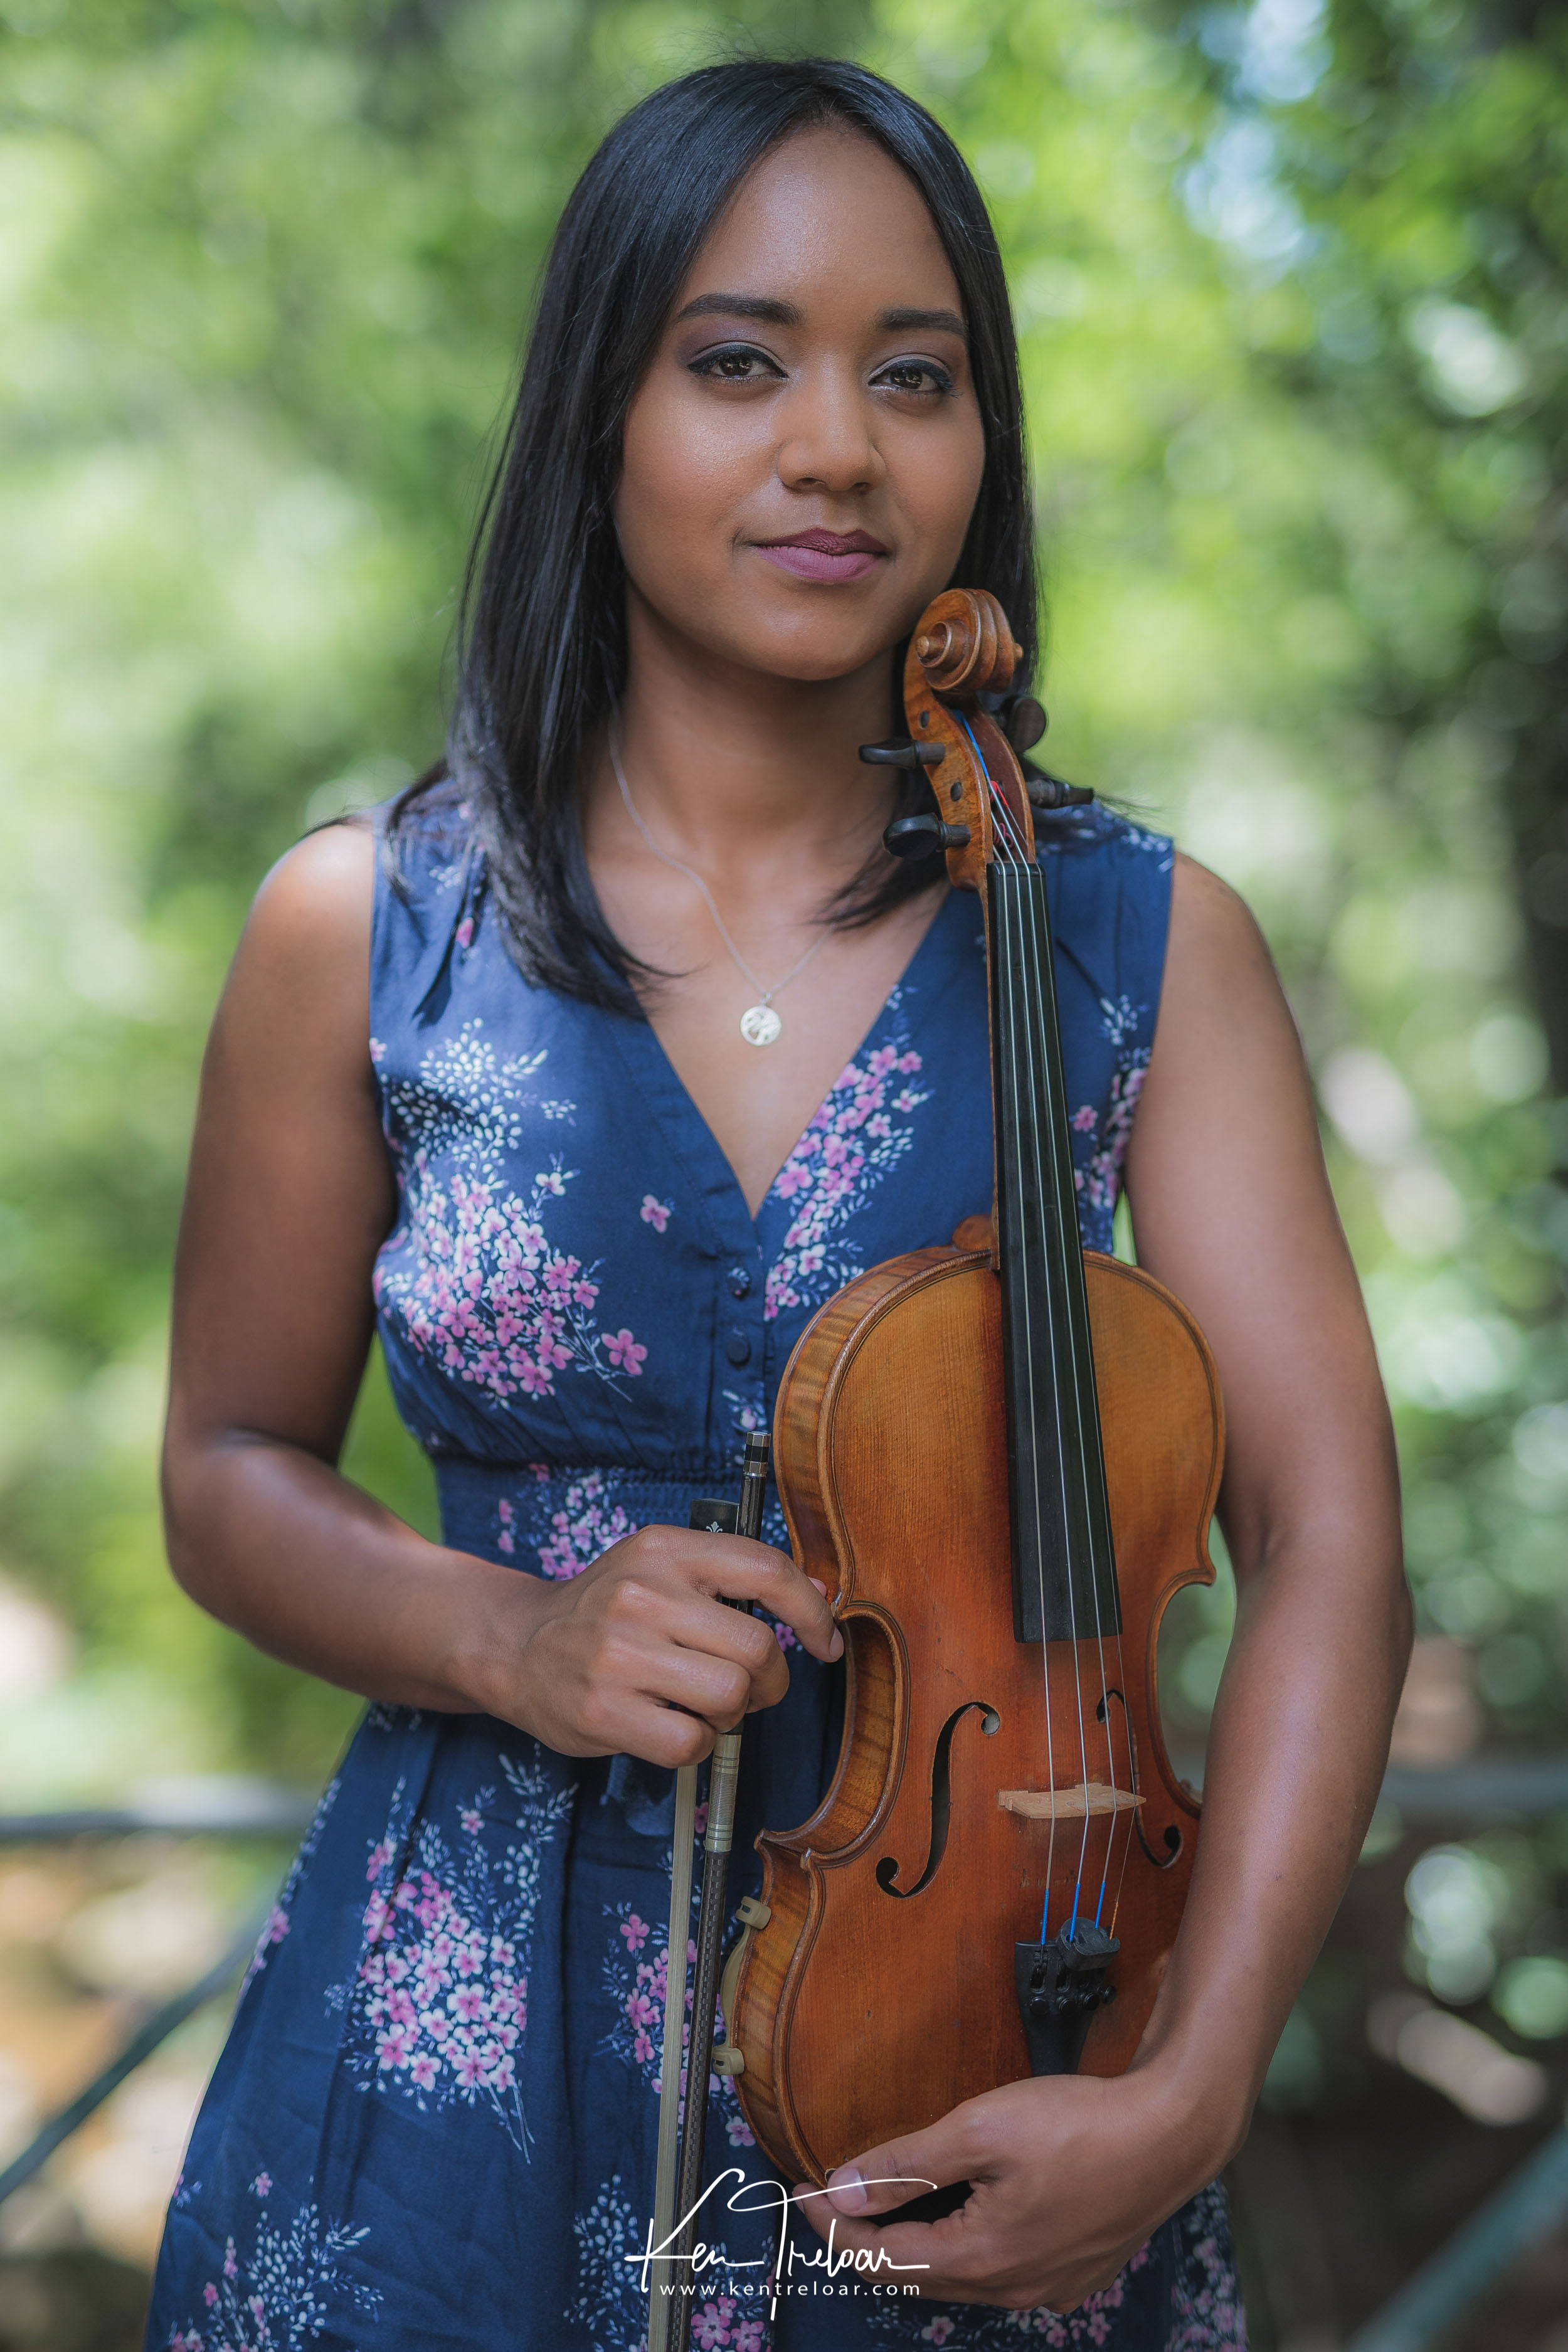 Ken Treloar Photography - Dec 2018 - Violin Woodland Forest Natural Light Portrait Photography - Cape Town-15.jpg